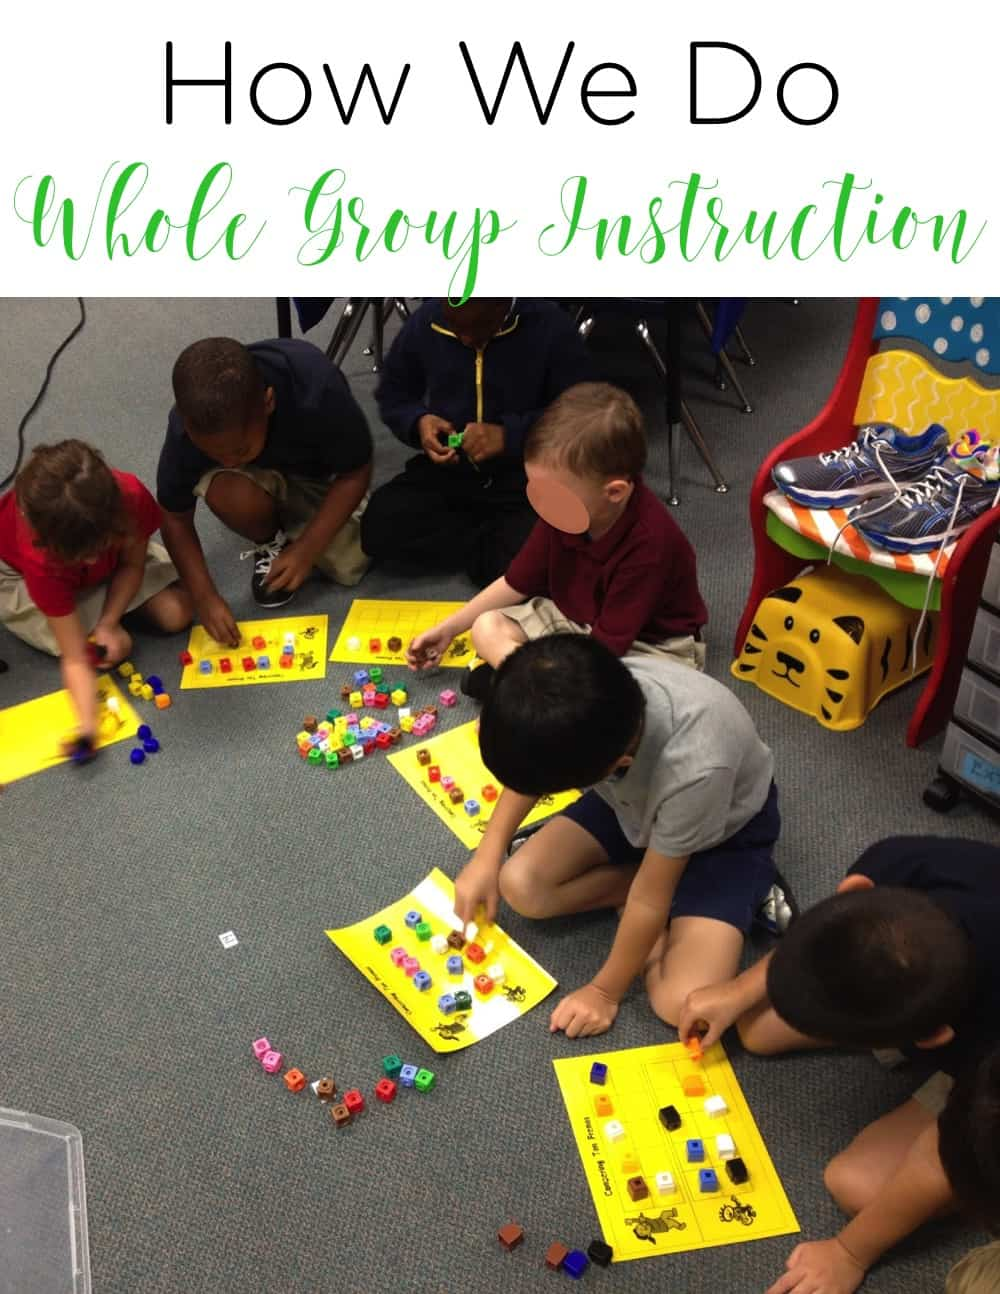 Whole group instruction is a part of every classroom. See how this teacher organizes that time and engages her students. #classroommanagement #firstgrade